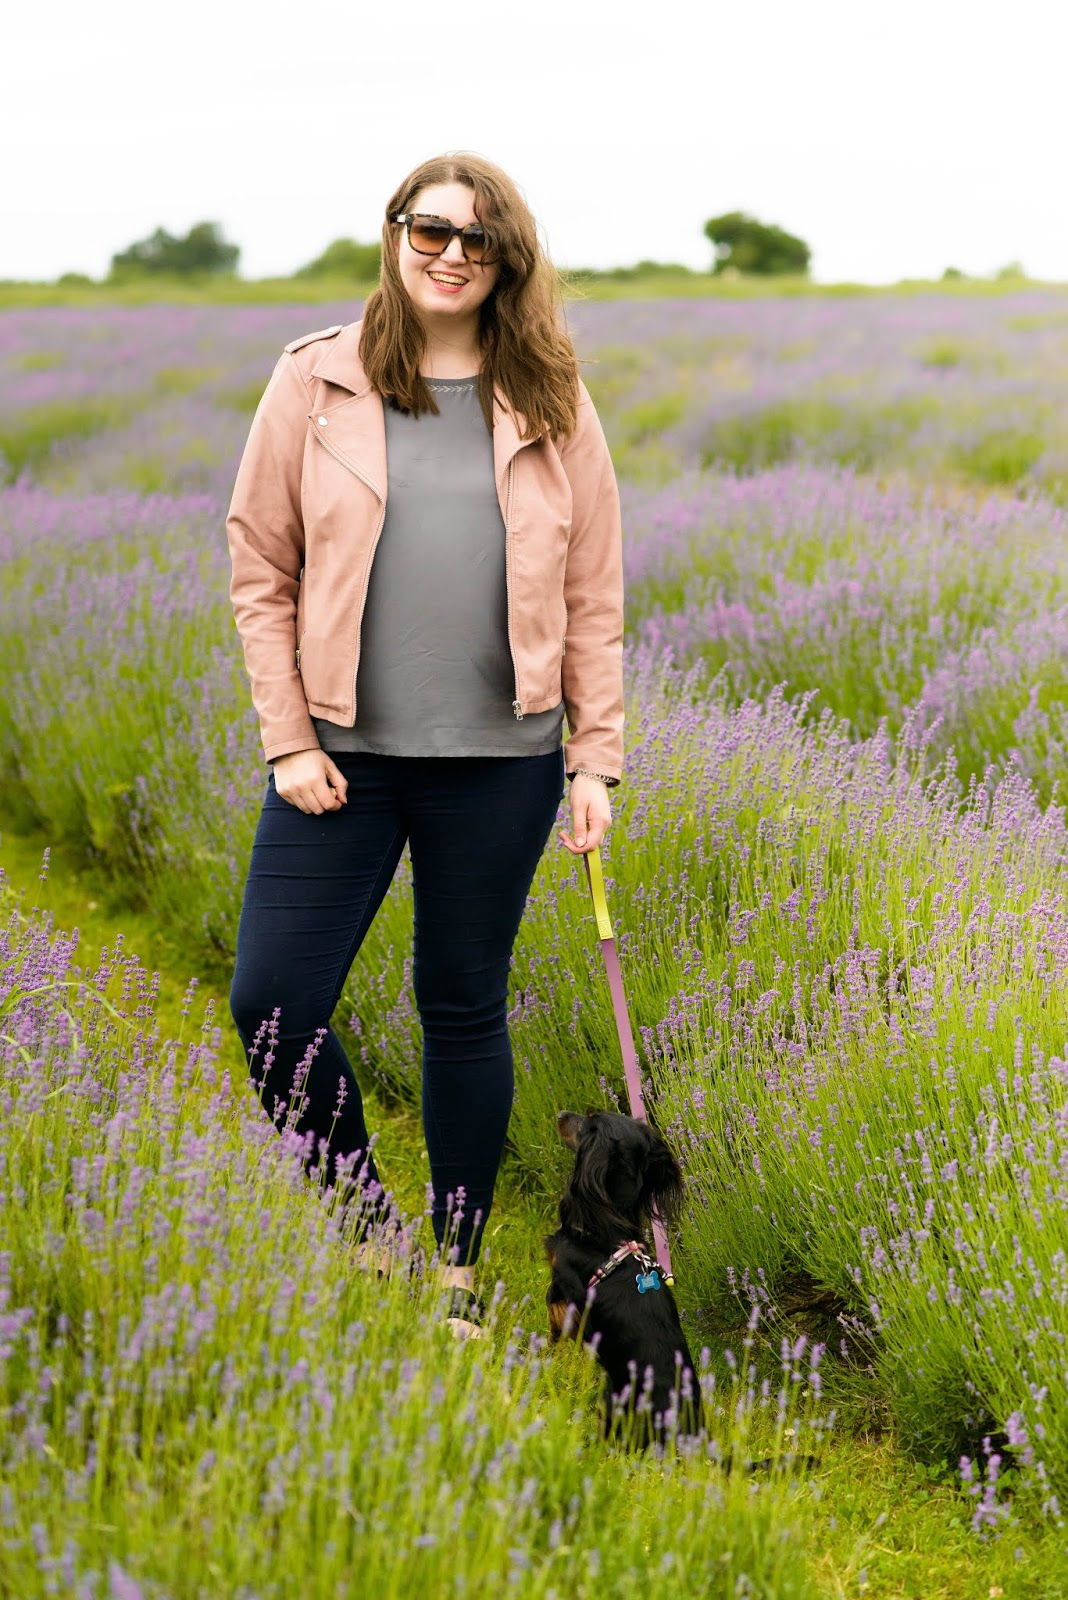 liquidgrain liquid grain lavender fields mayfield dachshund uk